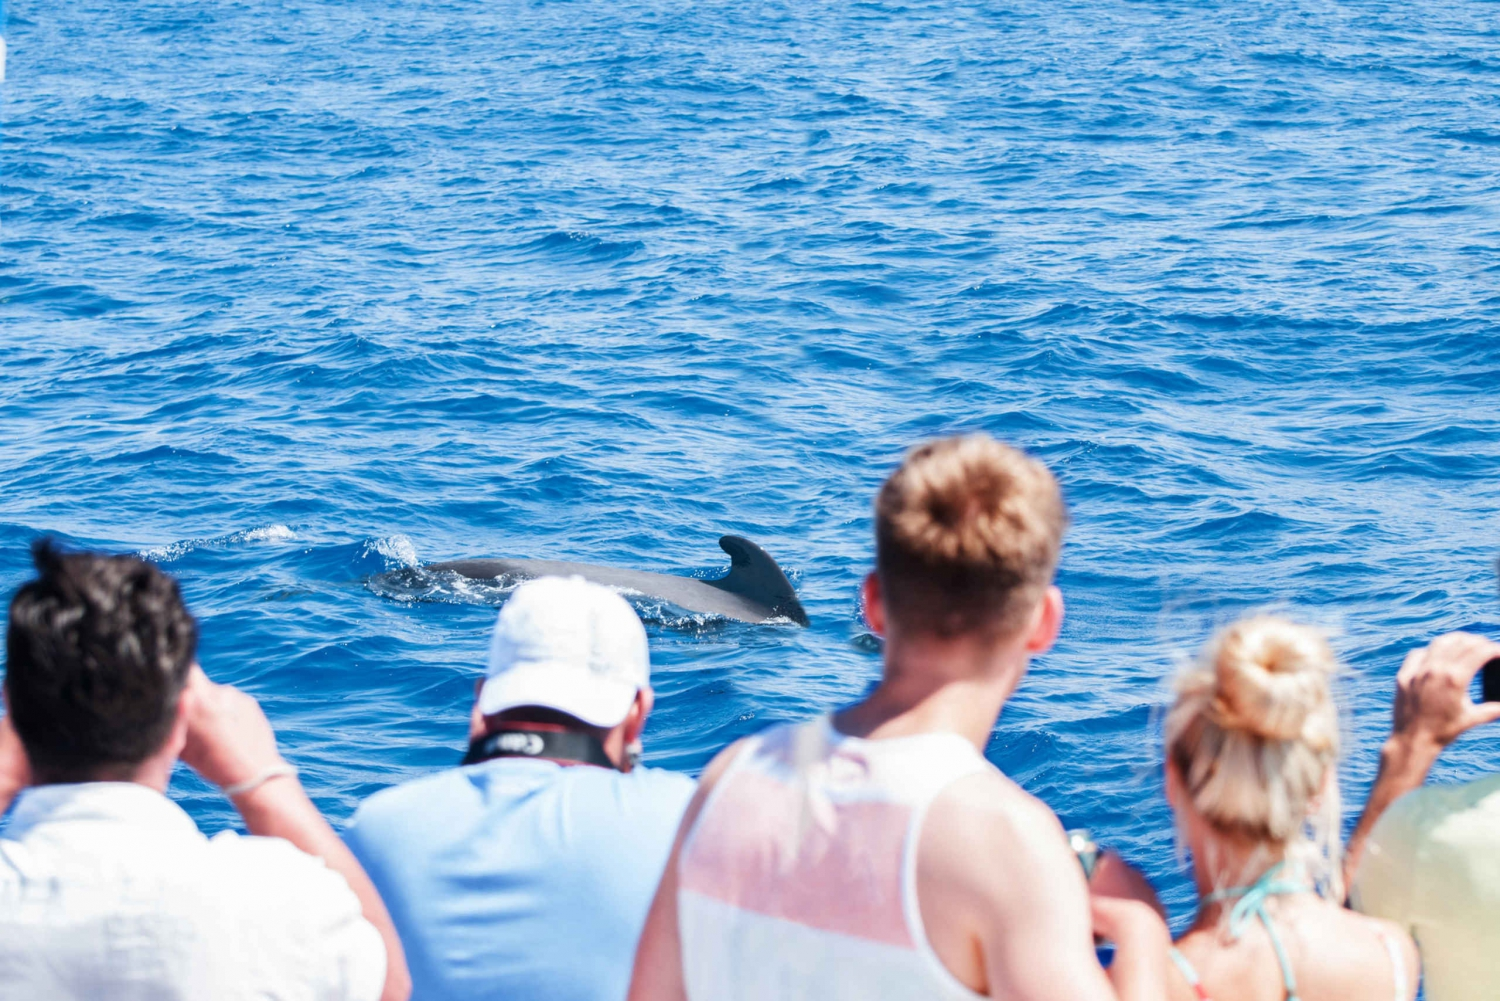 3-Hour Whale Watching Tour with Snorkeling